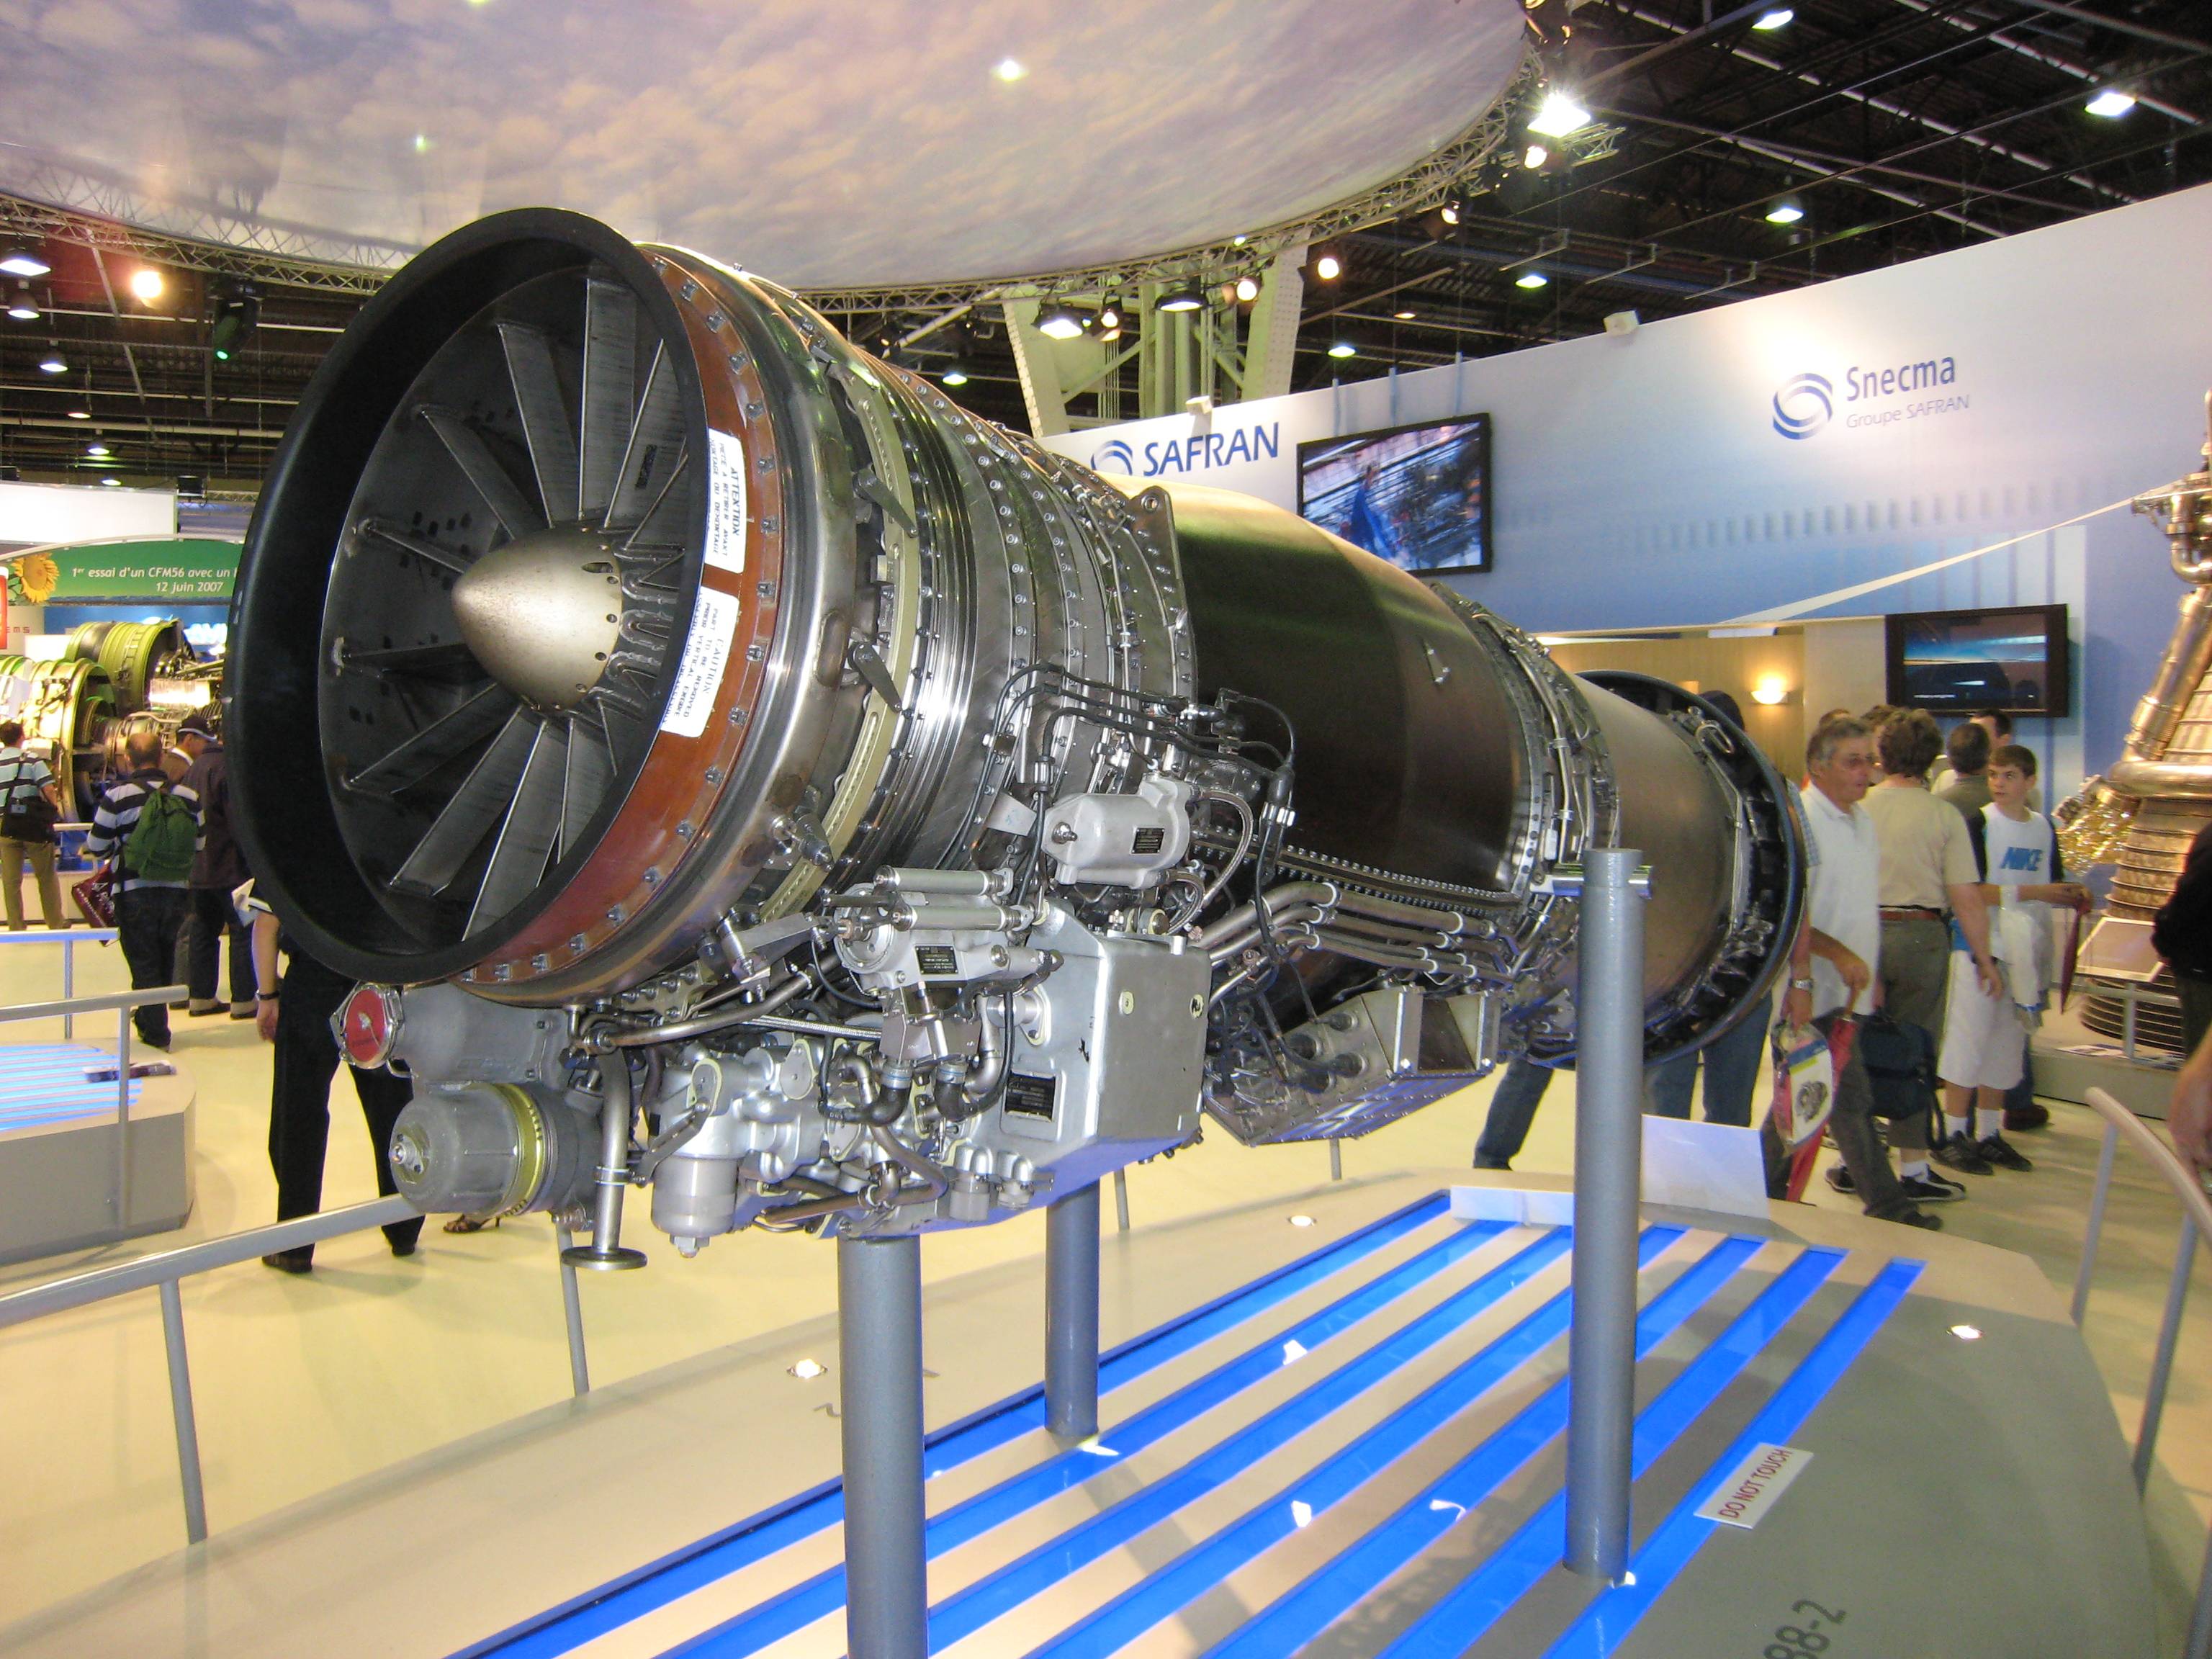 M88-2_Engine.JPG - 3.16 MB